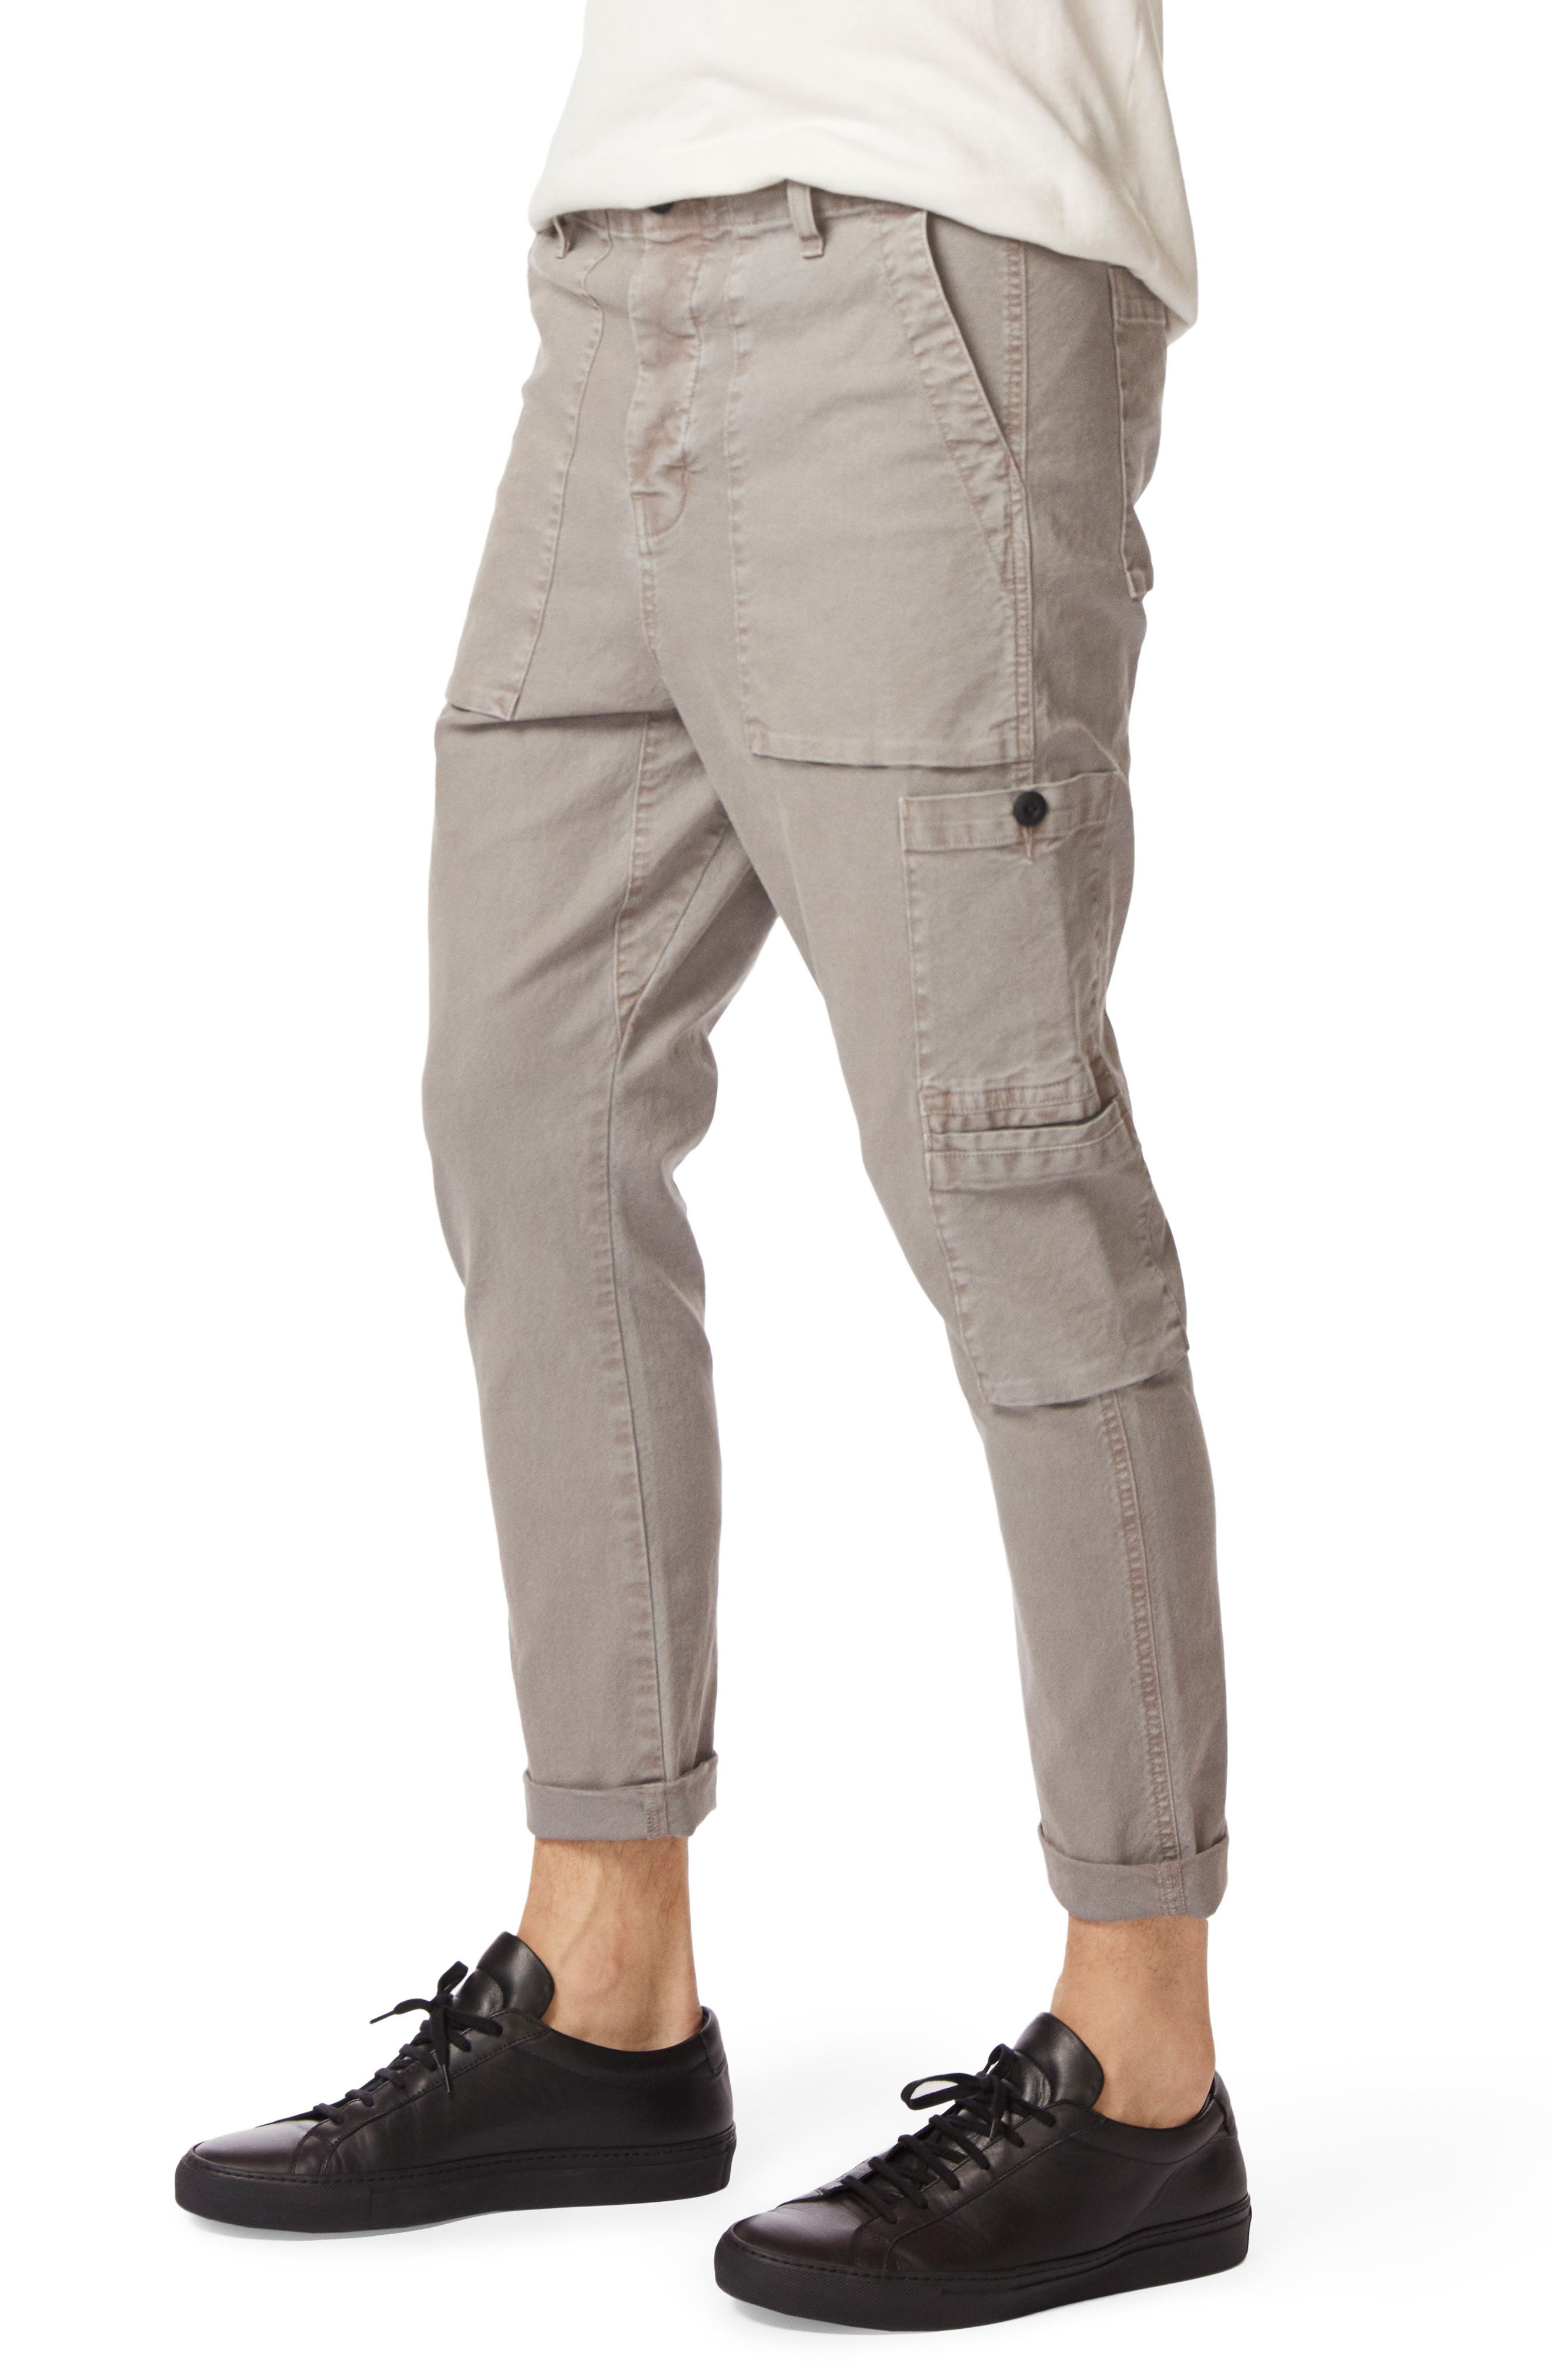 Koeficient Straight Fit Pant,                             Alternate thumbnail 3, color,                             314